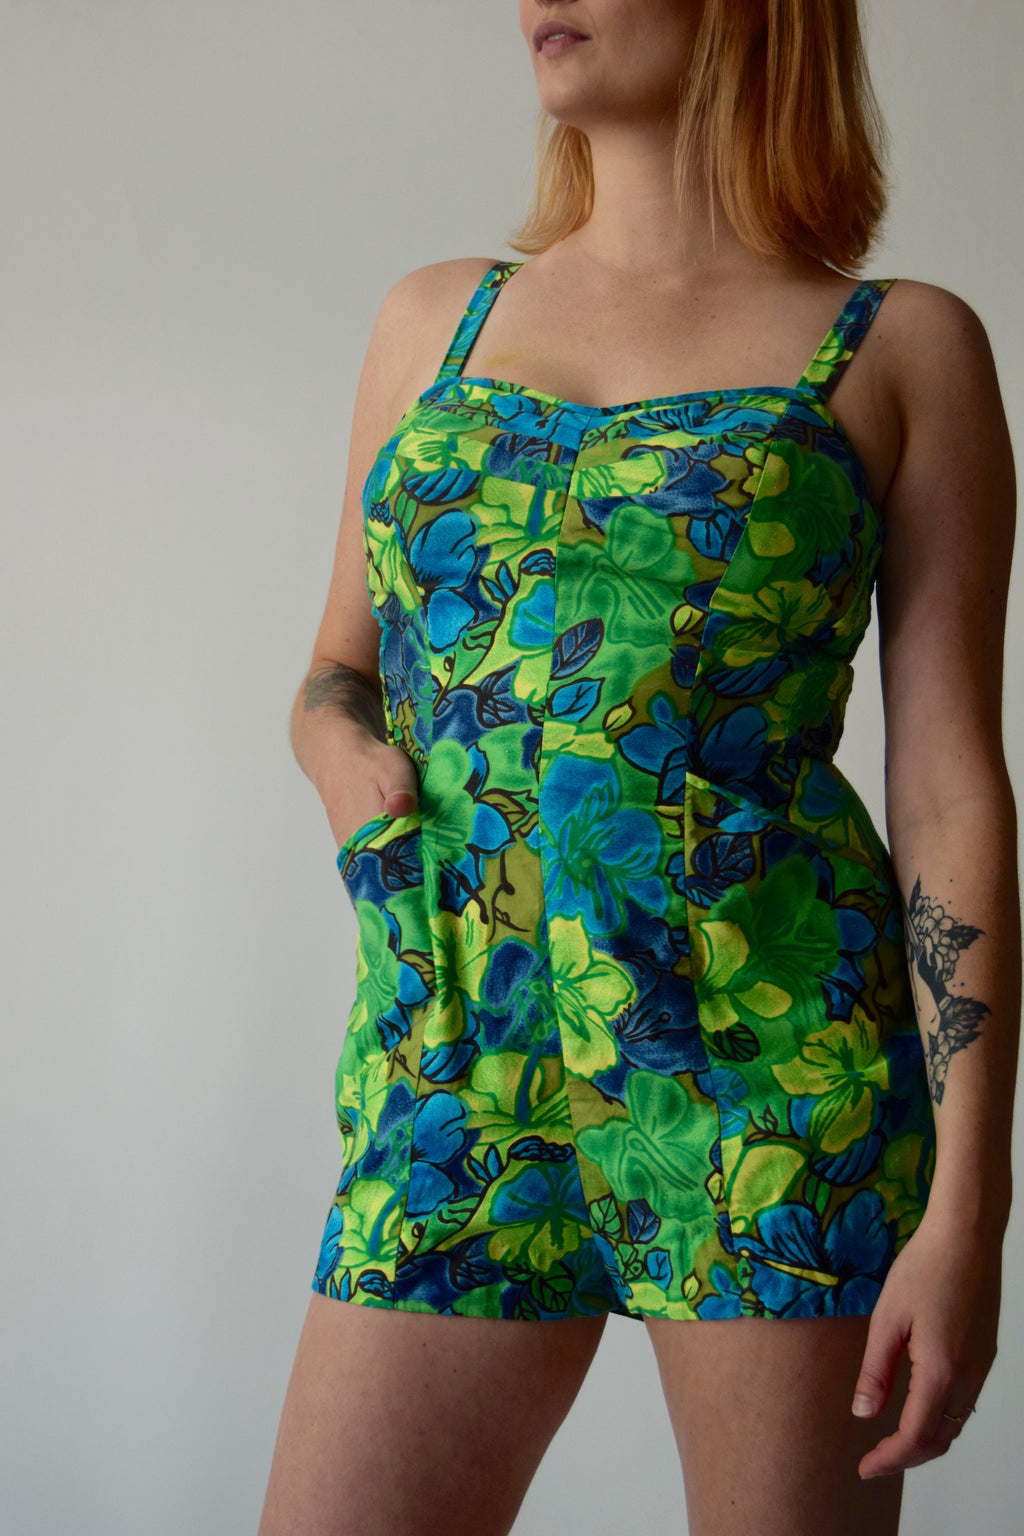 Vintage 1960's Hawaiian Floral Beach Cotton Playsuit